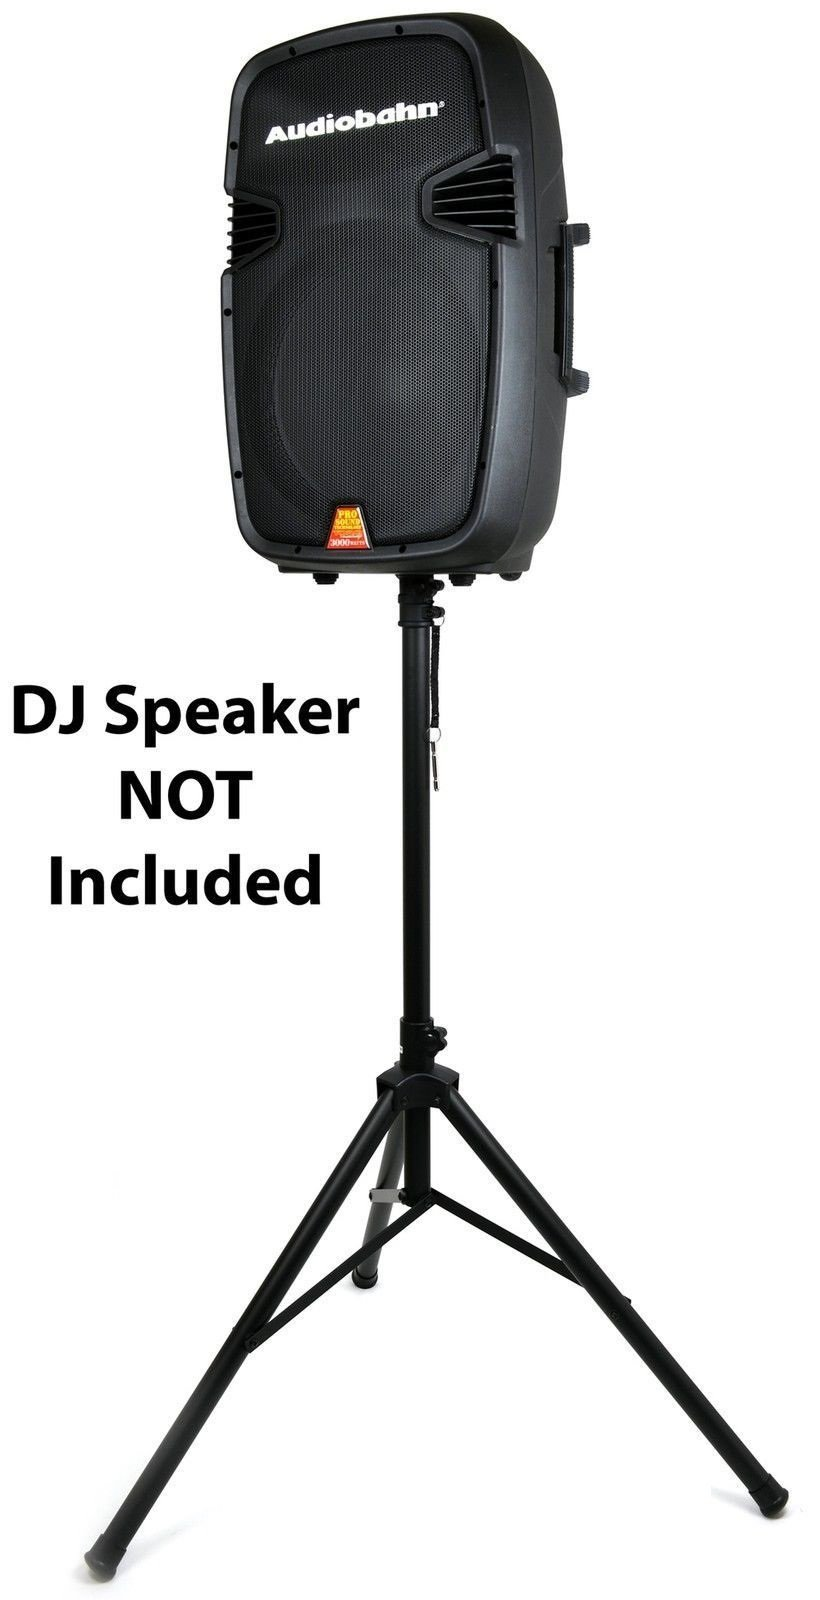 """Universal Heavy Duty 80 LBS DJ Speaker Tripod Equipment Stand w/Adjustable Height from 40"""" to 72"""" Mount Holder Easy Mobility Safety PIN and Knob Tension Locking for Stability"""